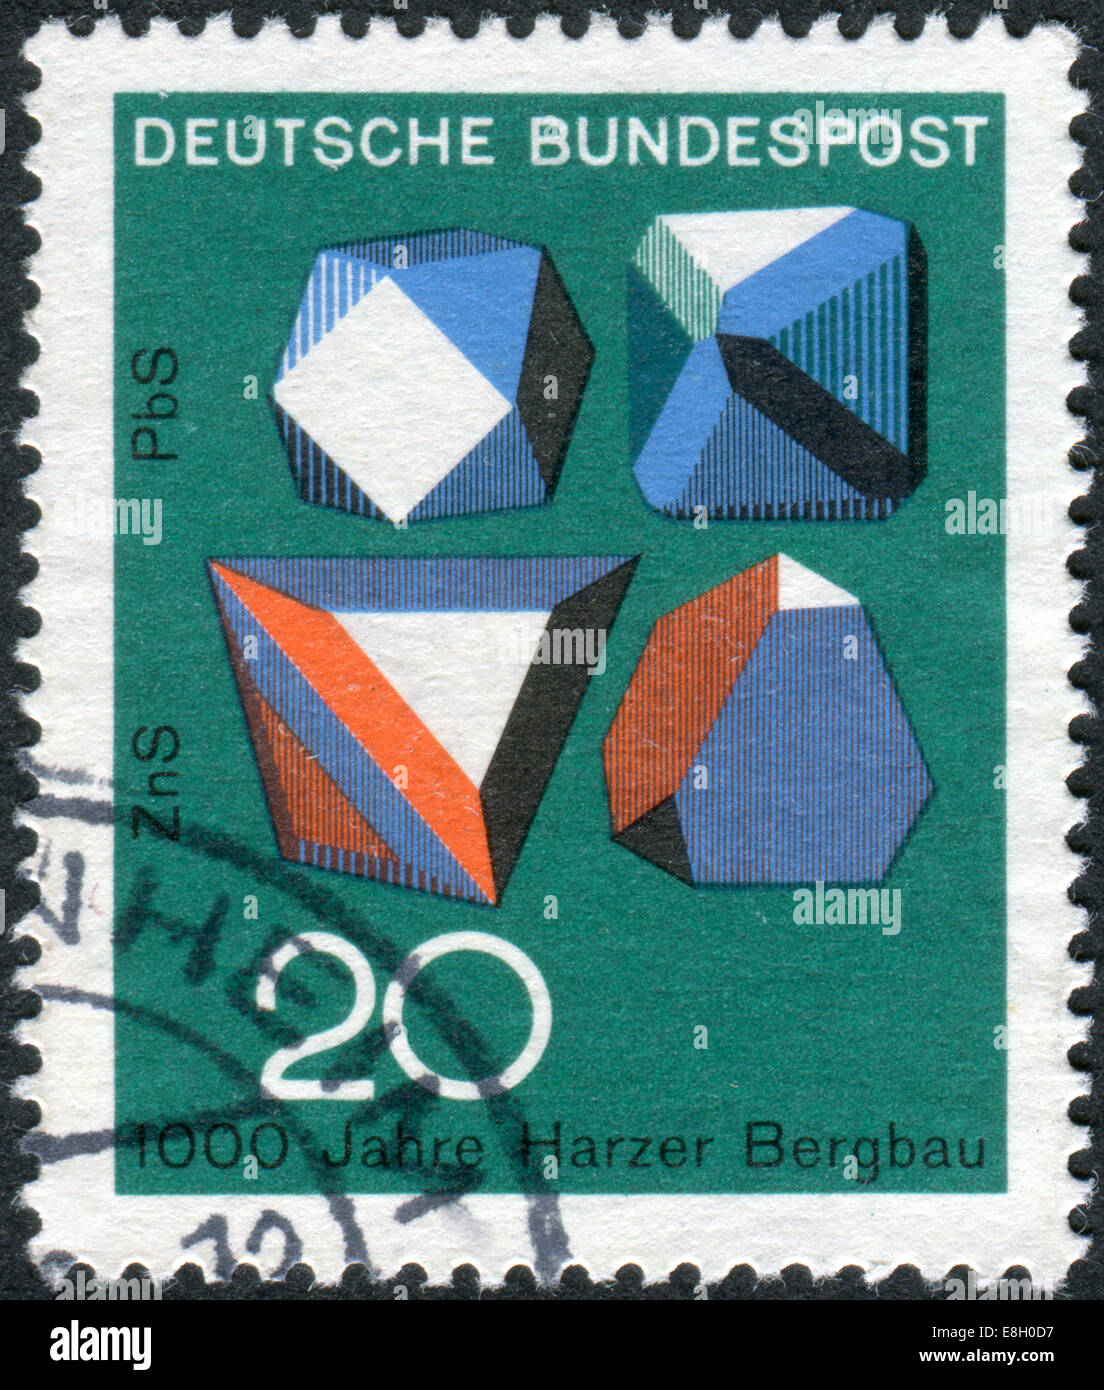 Stamp printed in Germany, 1000th anniversary of mining in the Harz Mountains, shows the mineral Galena and Sphalerite - Stock Image